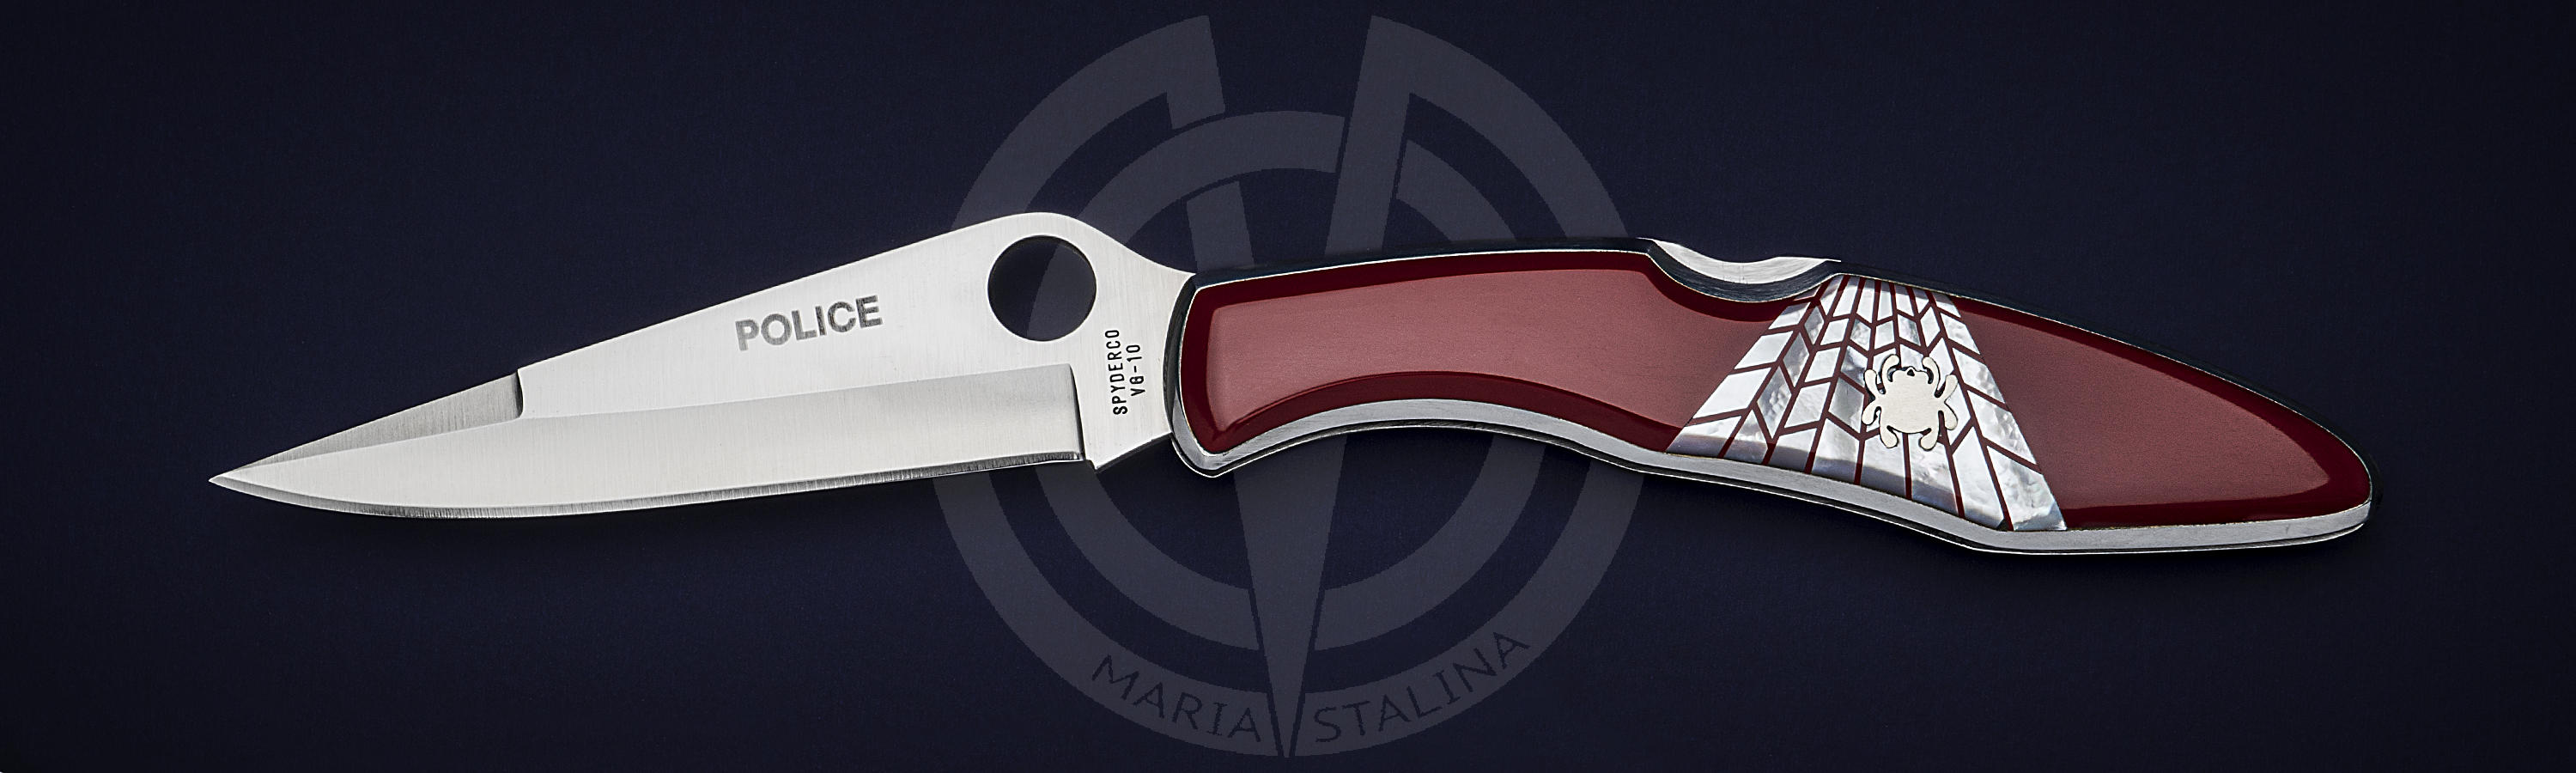 Spyderco нож Police Red